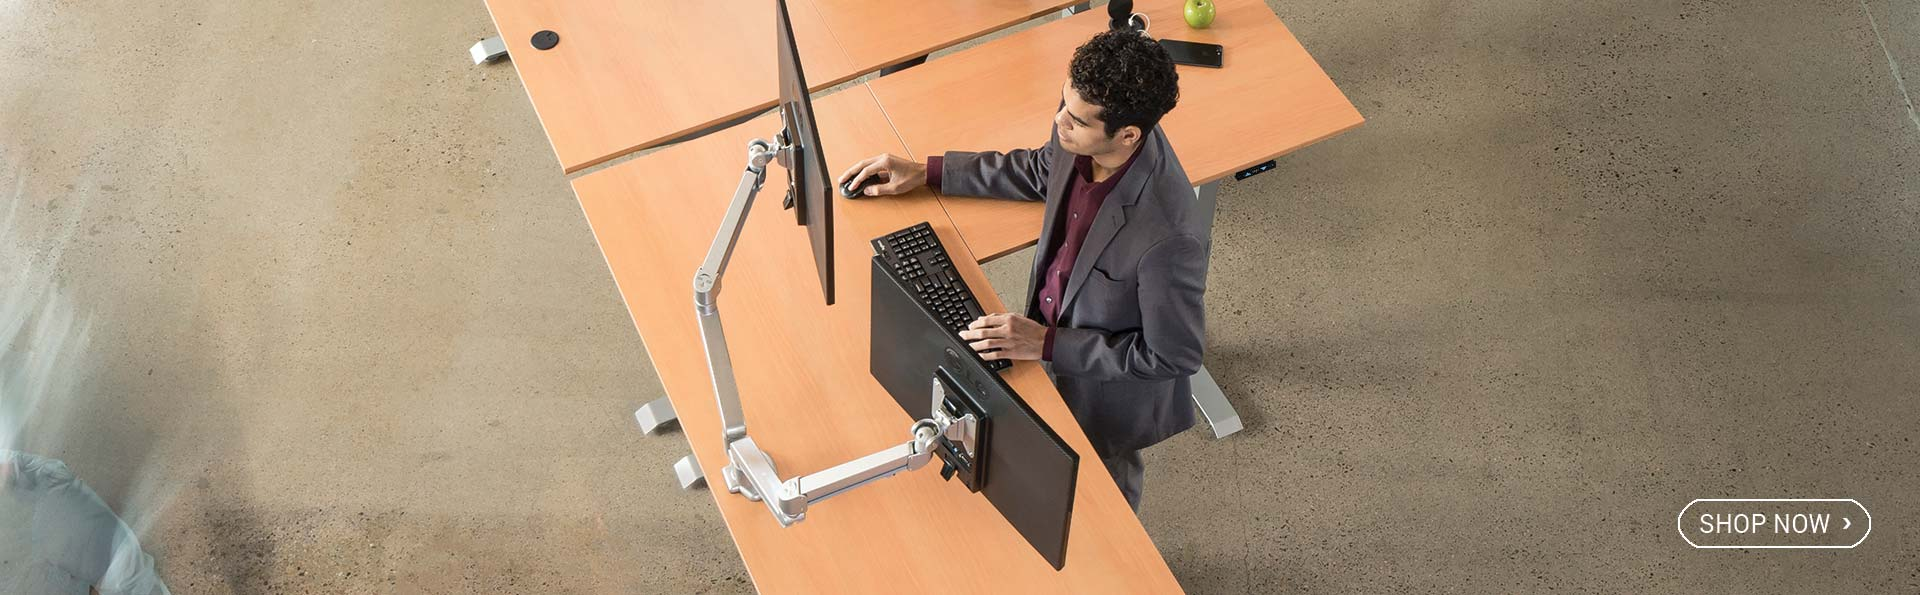 Mod E Pro L Shaped Corner Adjustable Height Standing Desk MultiTable